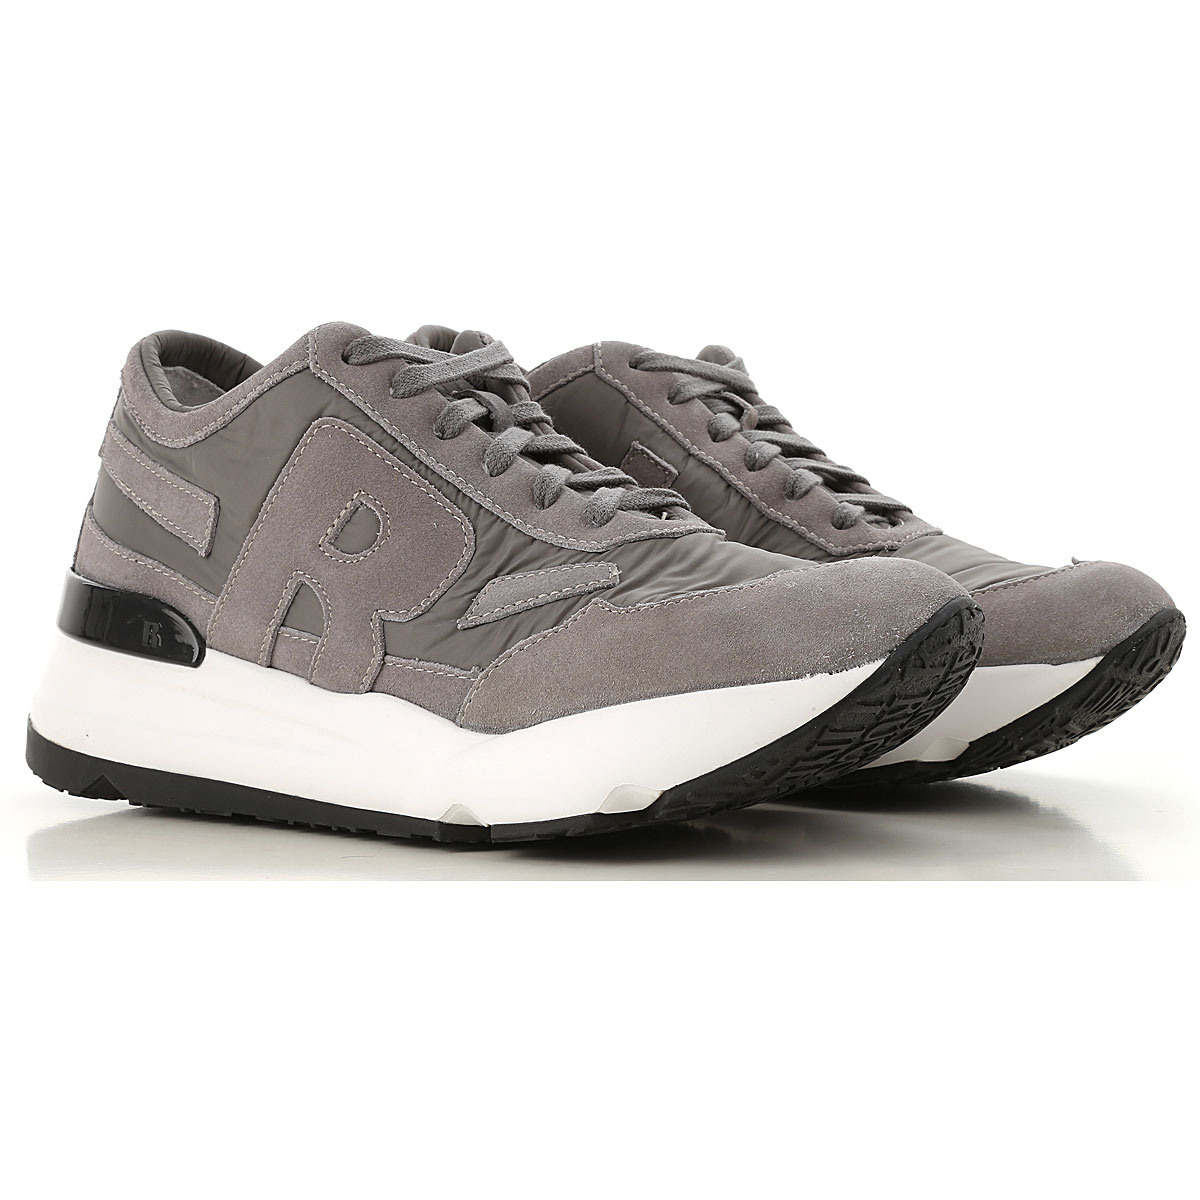 Image of Ruco Line Sneakers for Women, Grey, Nylon, 2017, 10 11 6 7 8